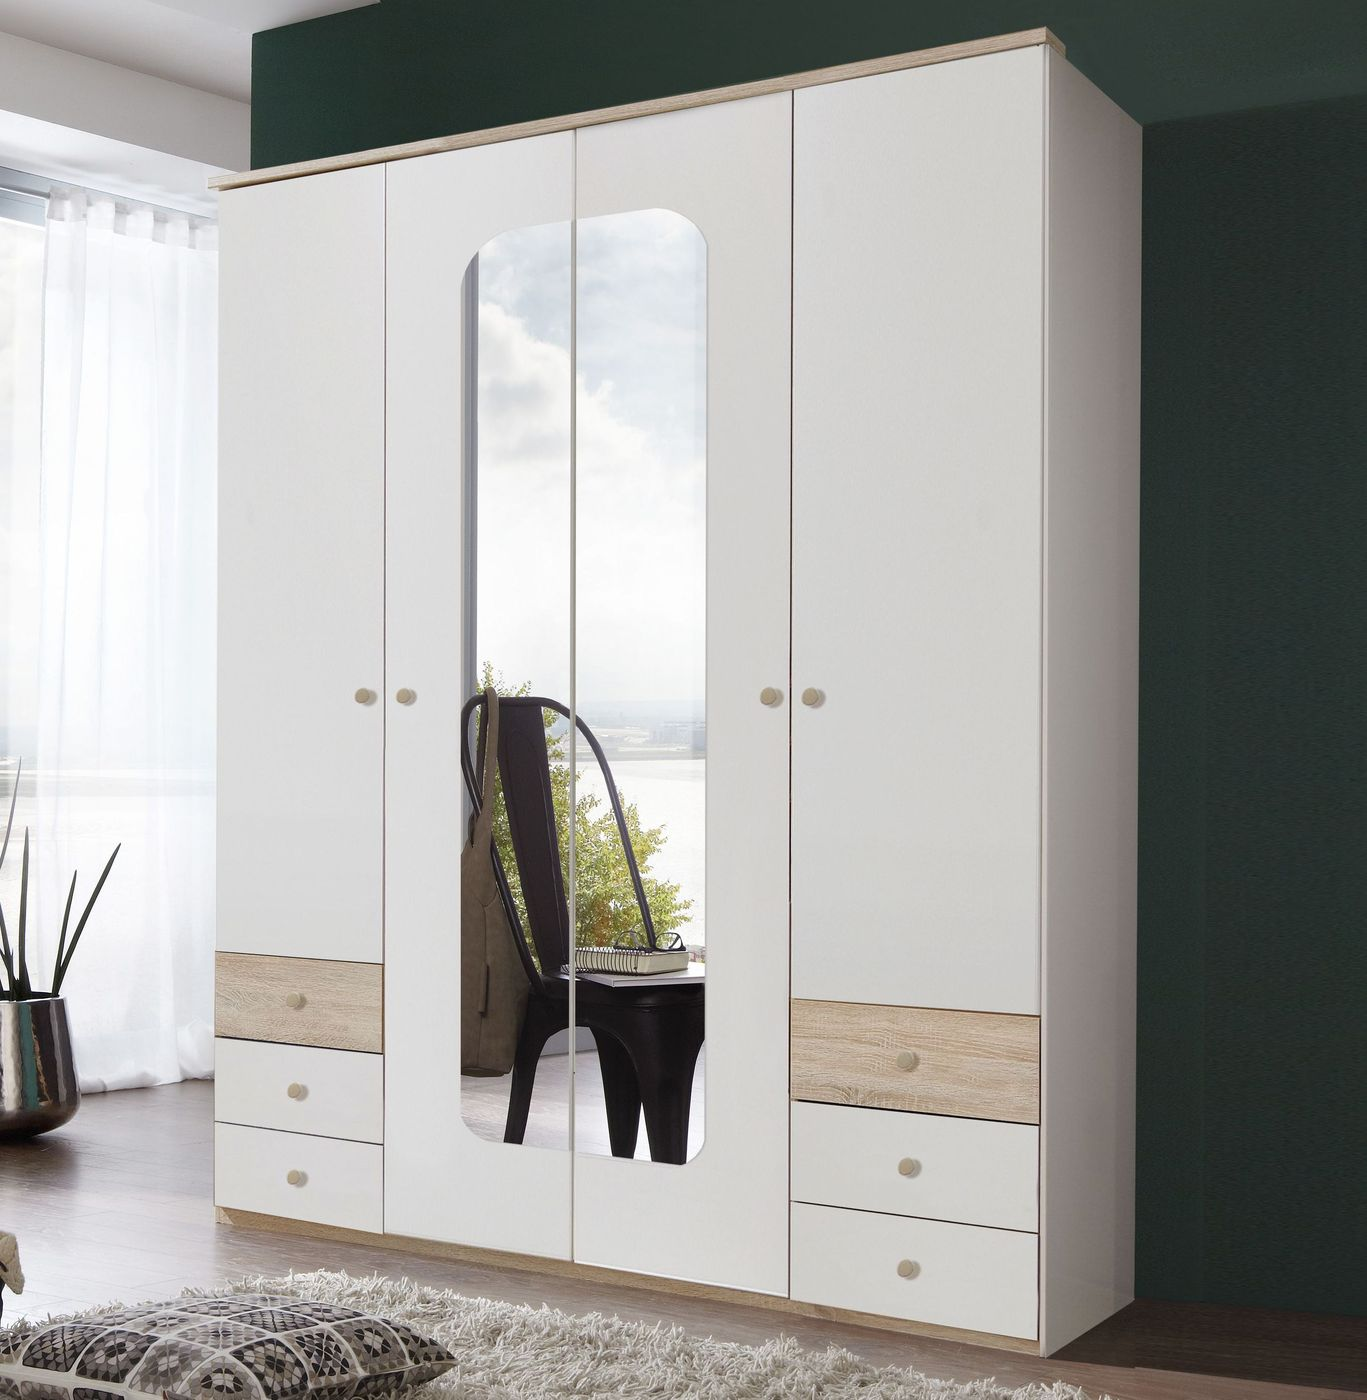 wei er schrank im retrolook mit spiegel und schubladen corvara. Black Bedroom Furniture Sets. Home Design Ideas